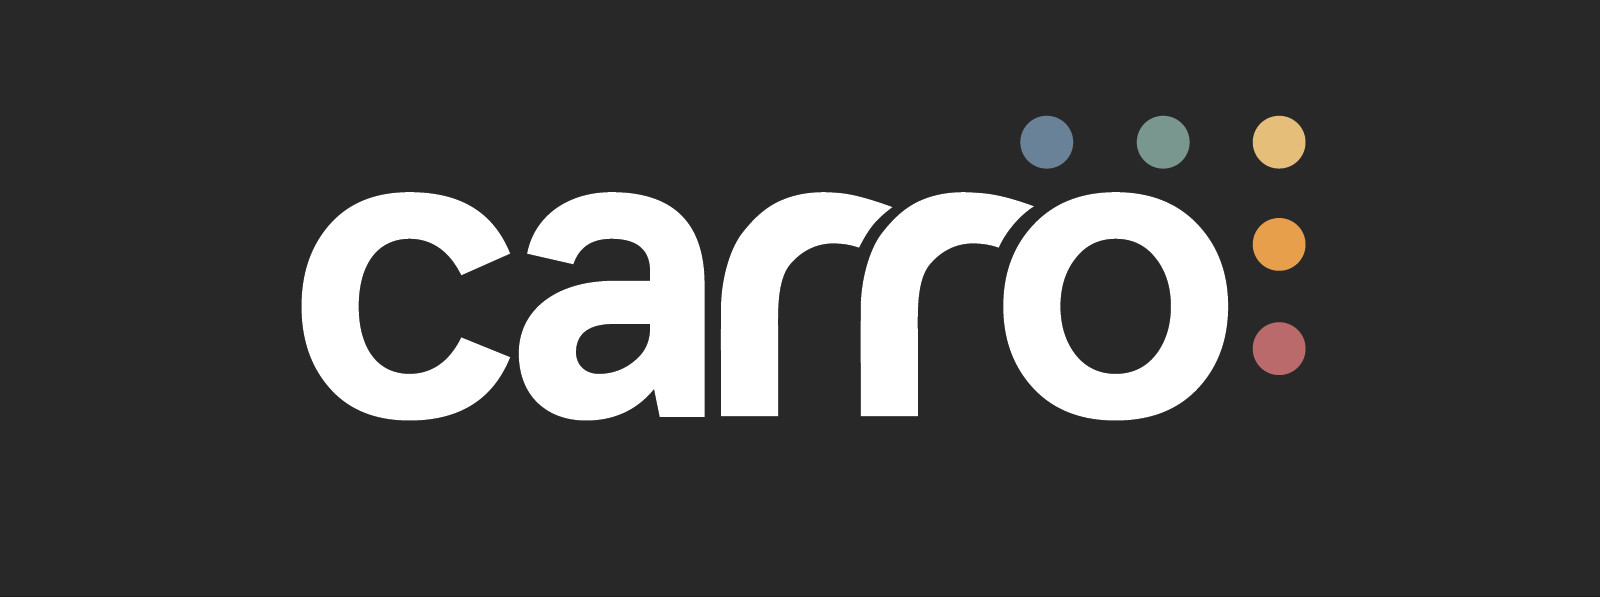 Carro_Dribbble.png